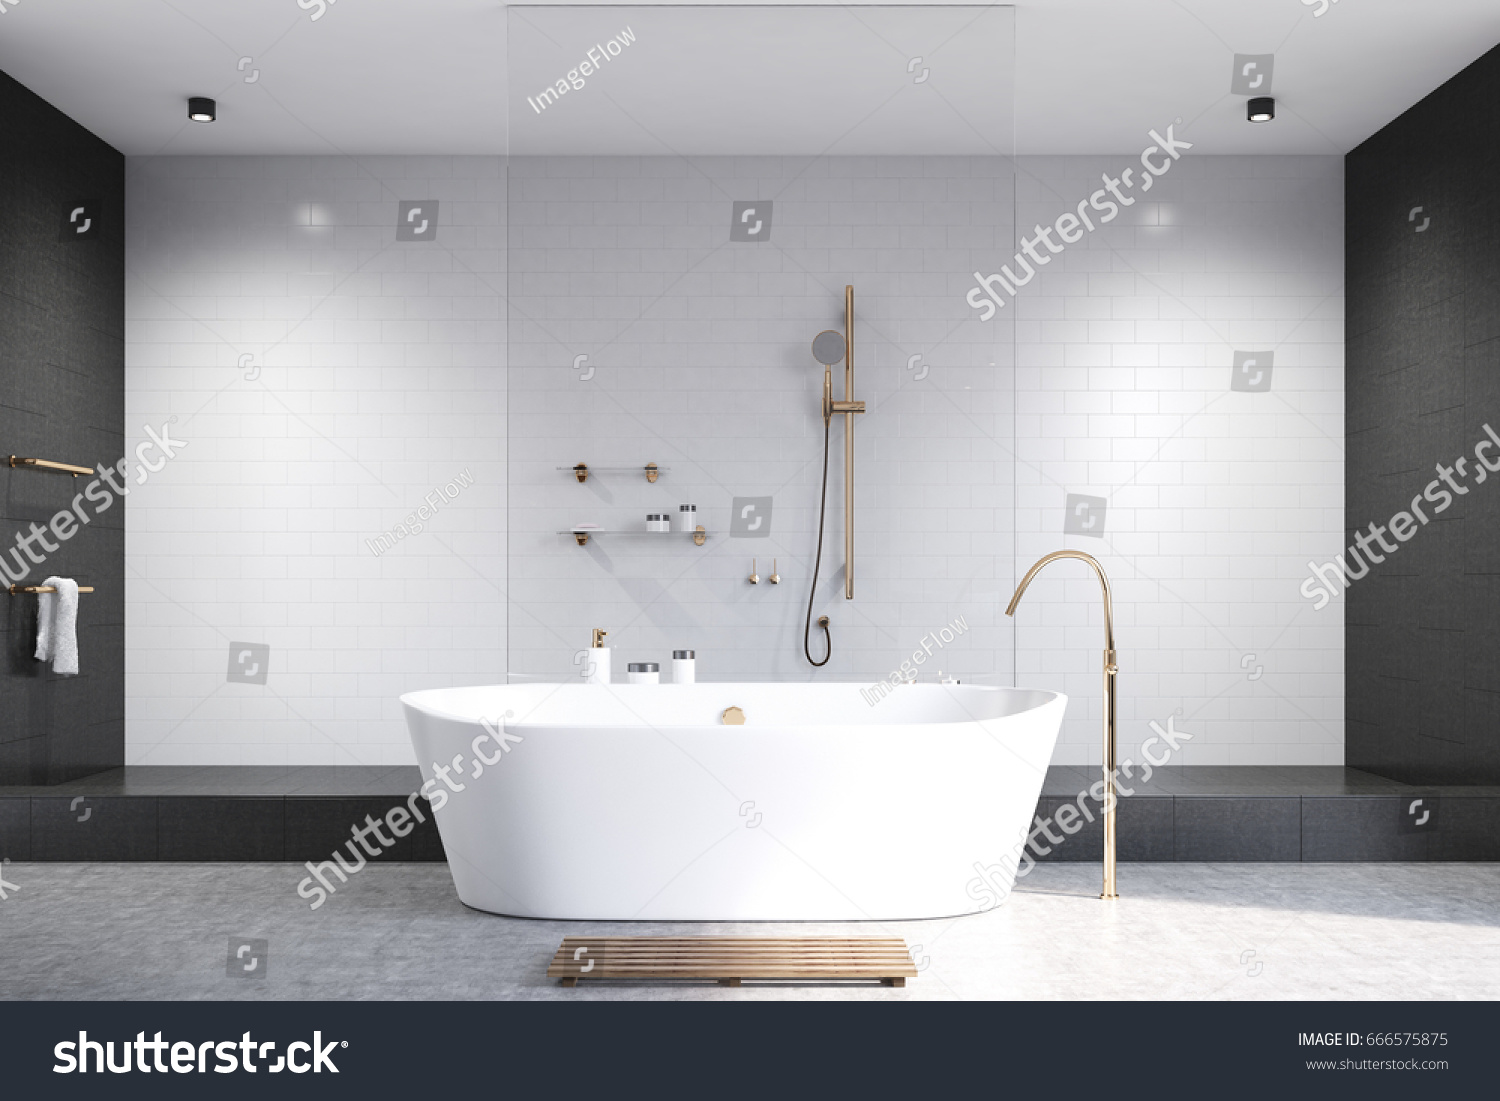 Luxury White Bathroom Interior White Black Stock Illustration ...